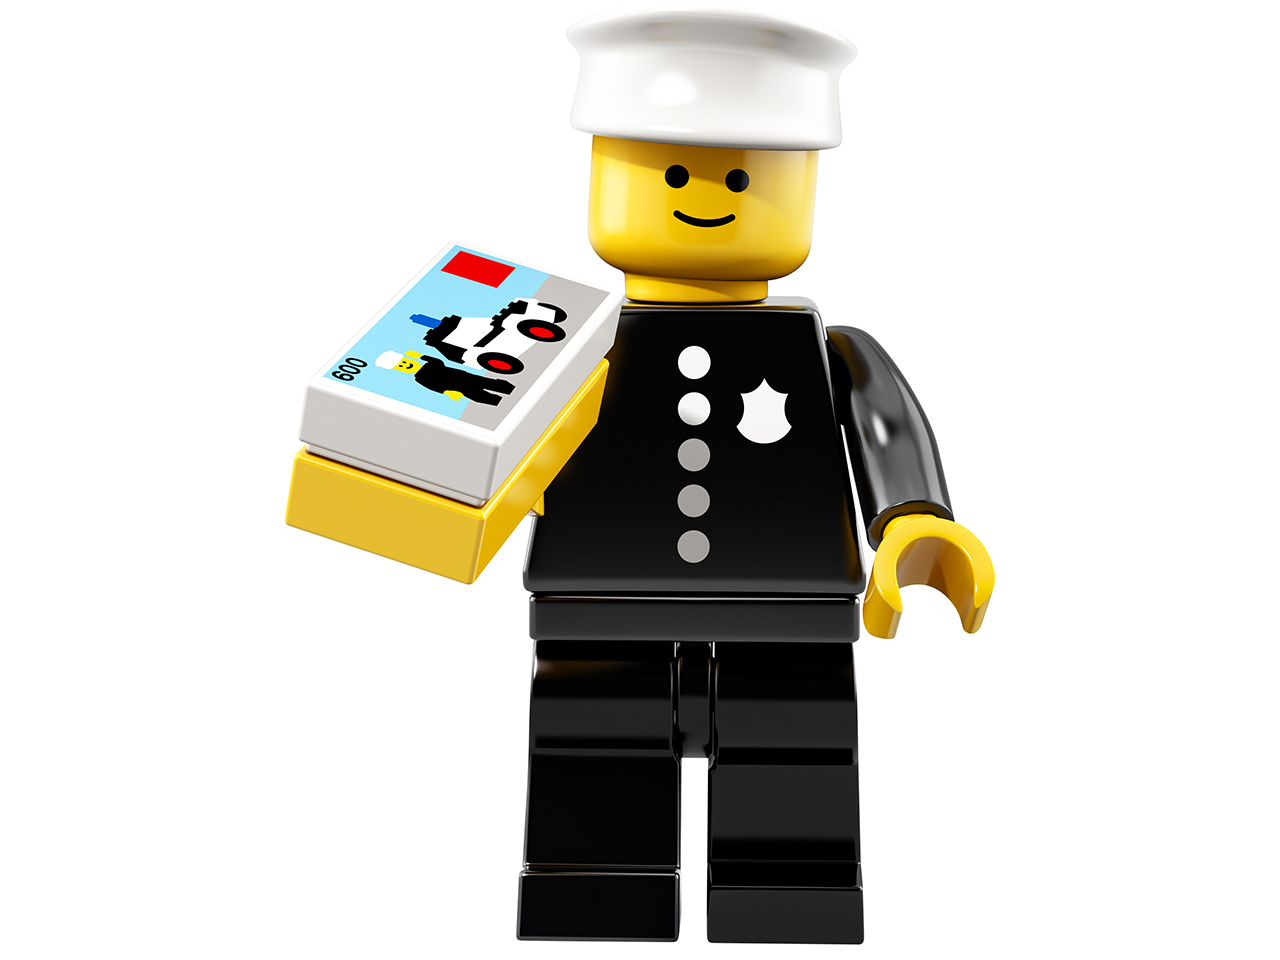 This vintage LEGO Minifigure is being recreated for the tiny character's 40th birthday